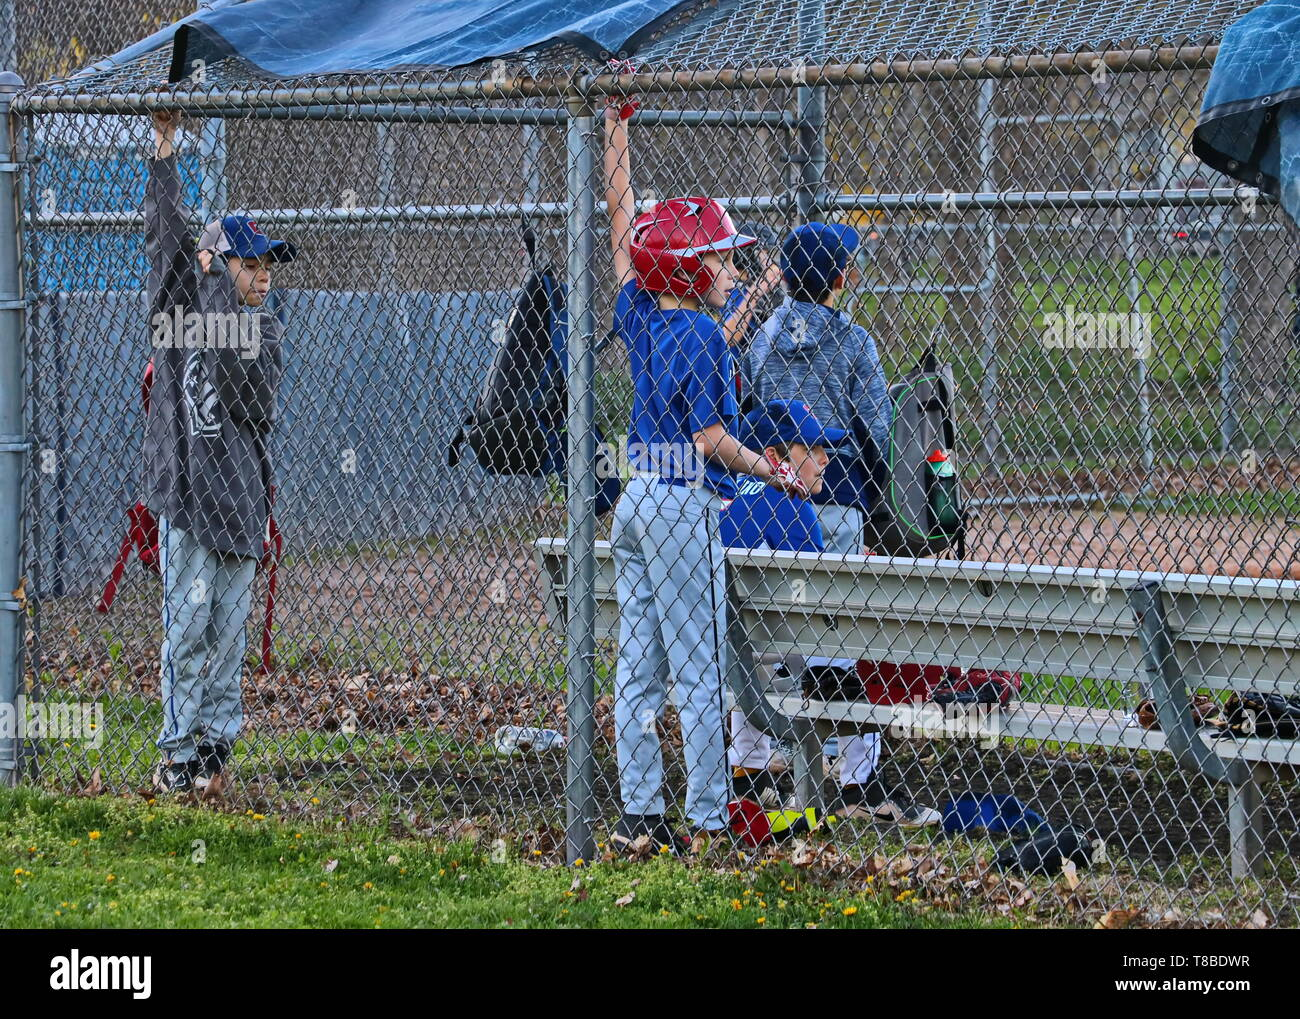 young boys watching their teammates on the field from the dugout - Stock Image